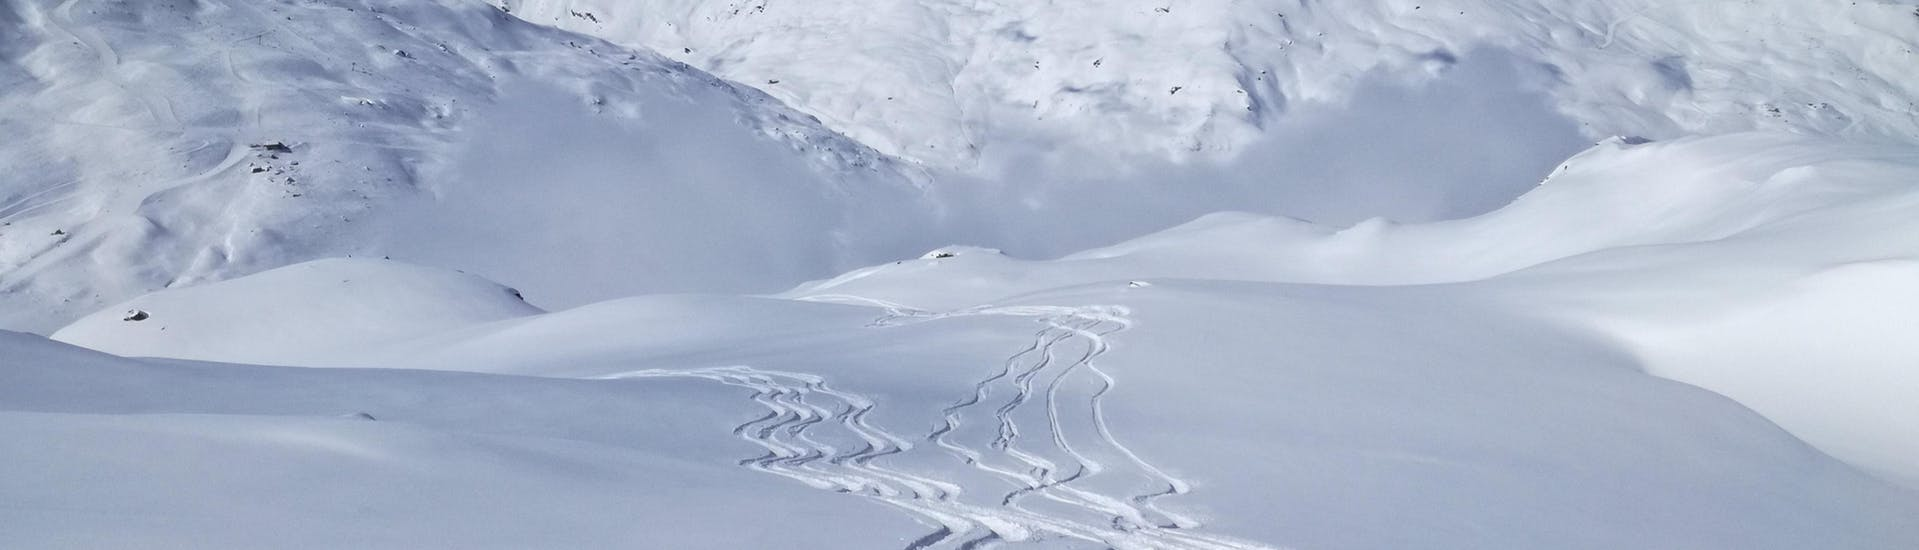 Private Off-Piste Snowboarding Lessons